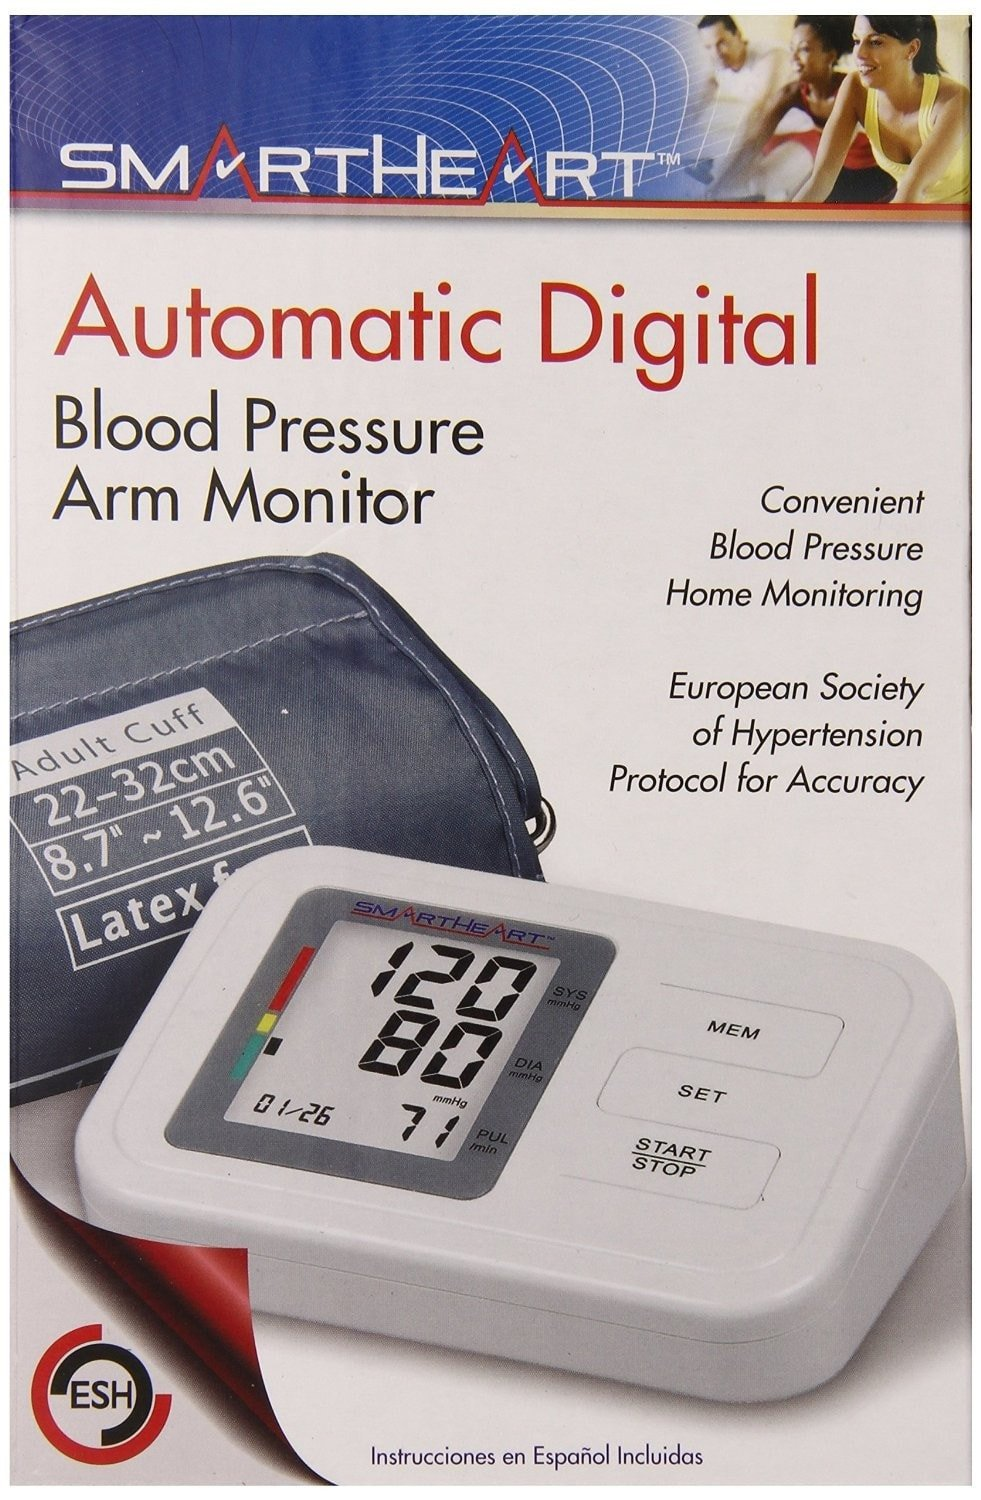 Veridian Automatic Digital Blood Pressure Monitor 01-550